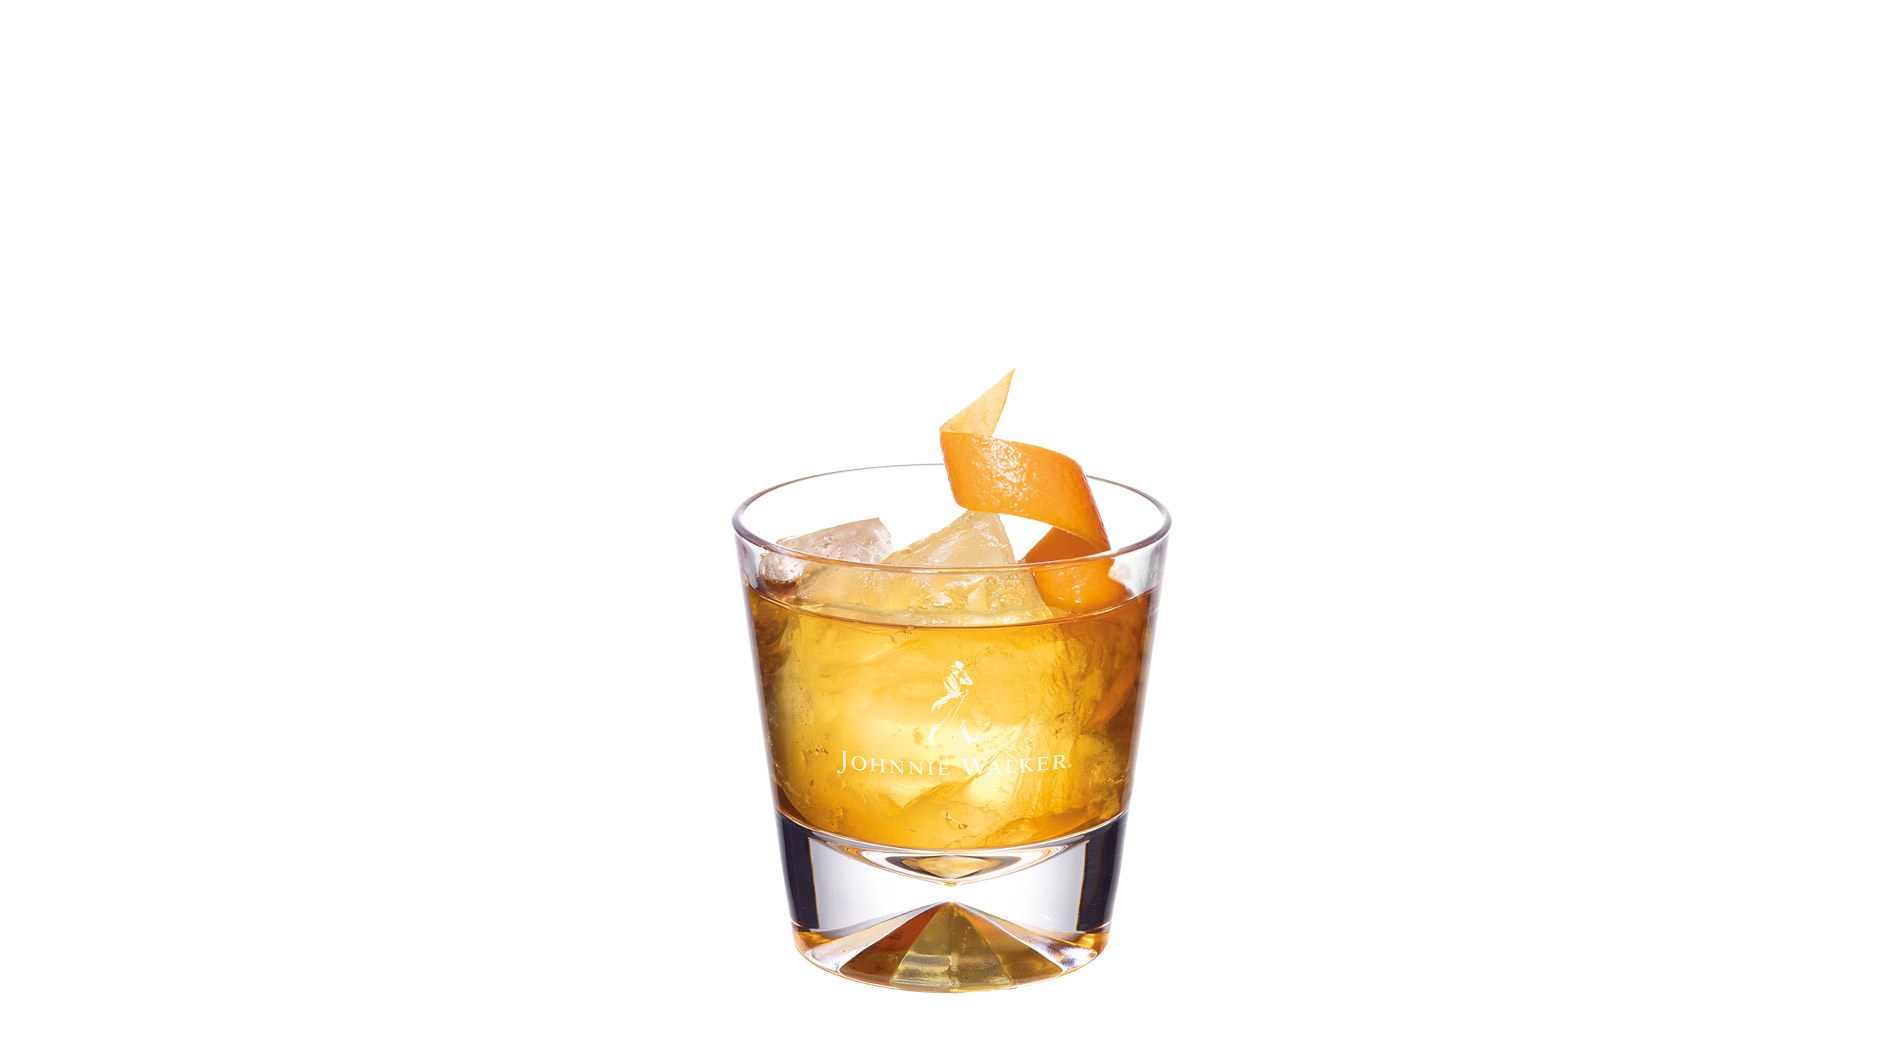 johnnie walker re fashioned thumbnail